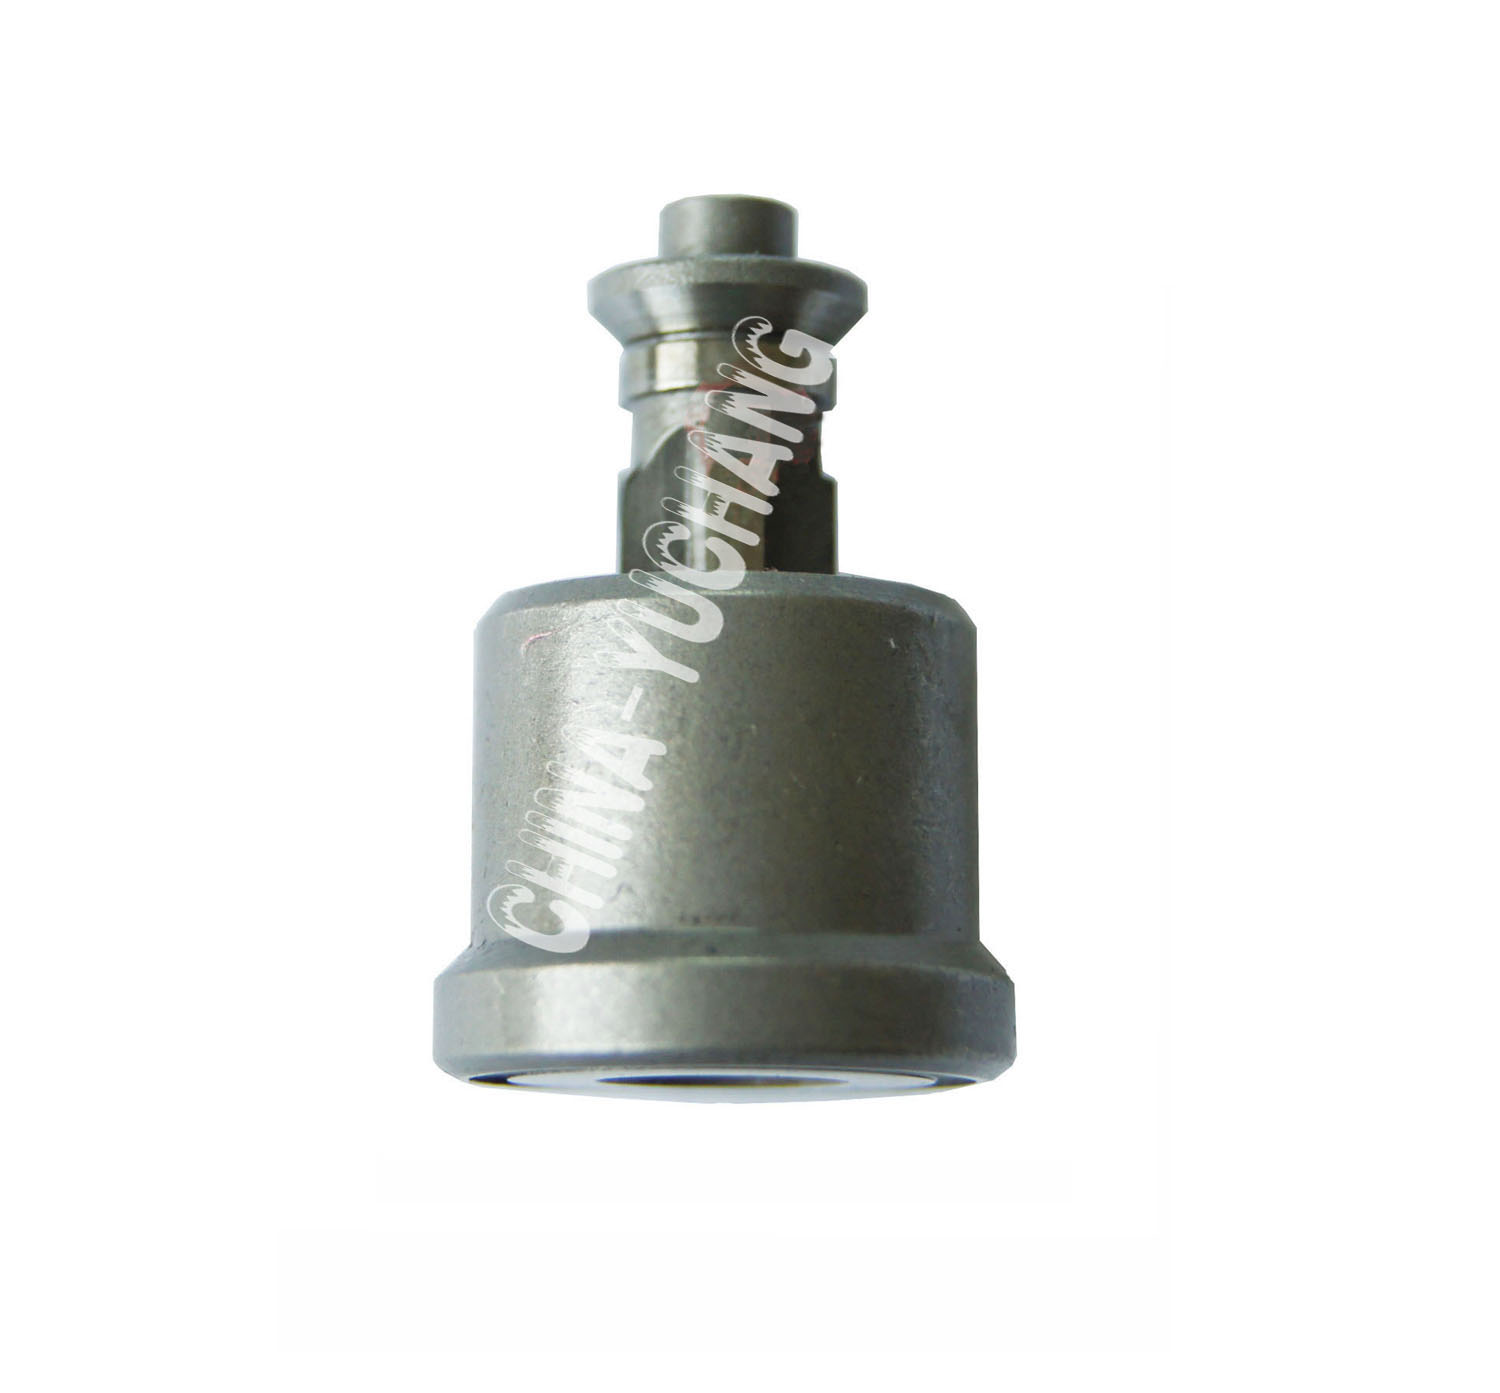 Delivery valves A86 131160-0520